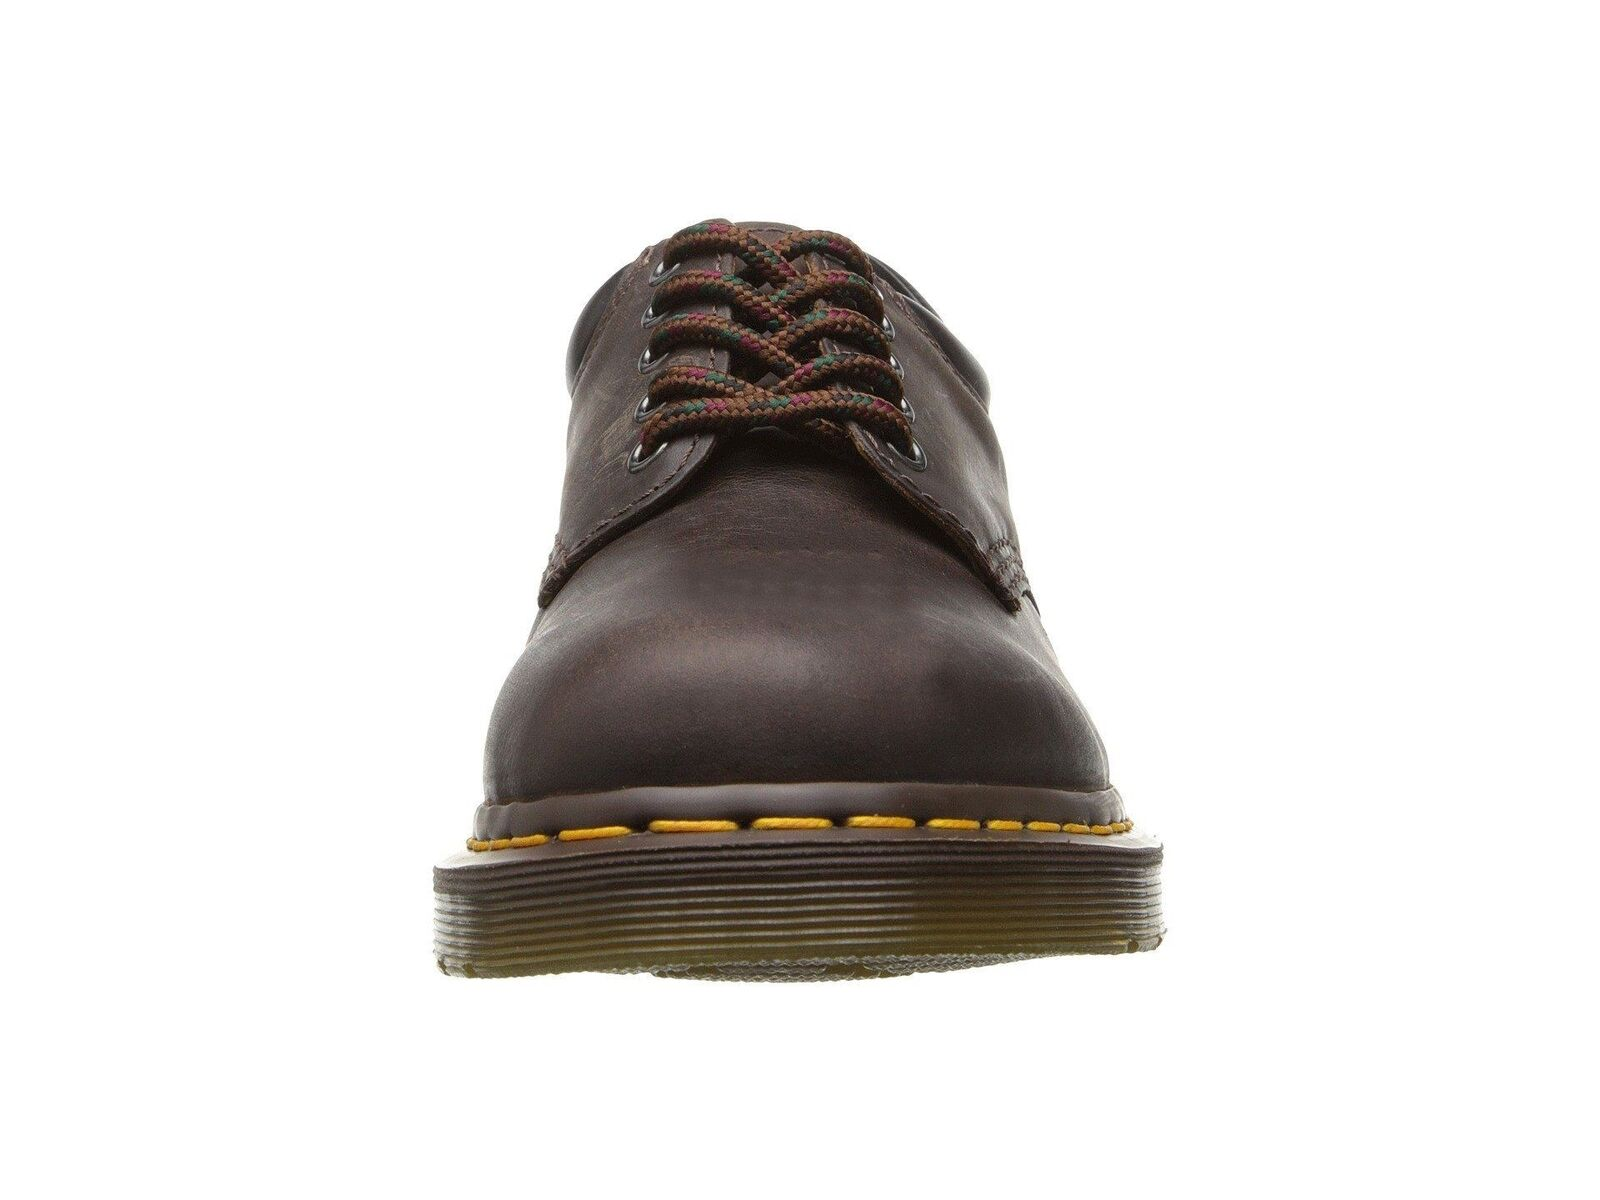 f6d1df7be2d0 ... Dr. Marten s Air Air Air Wair Men s Size 8053 Crazy Horse Leather  Gaucho (Brown